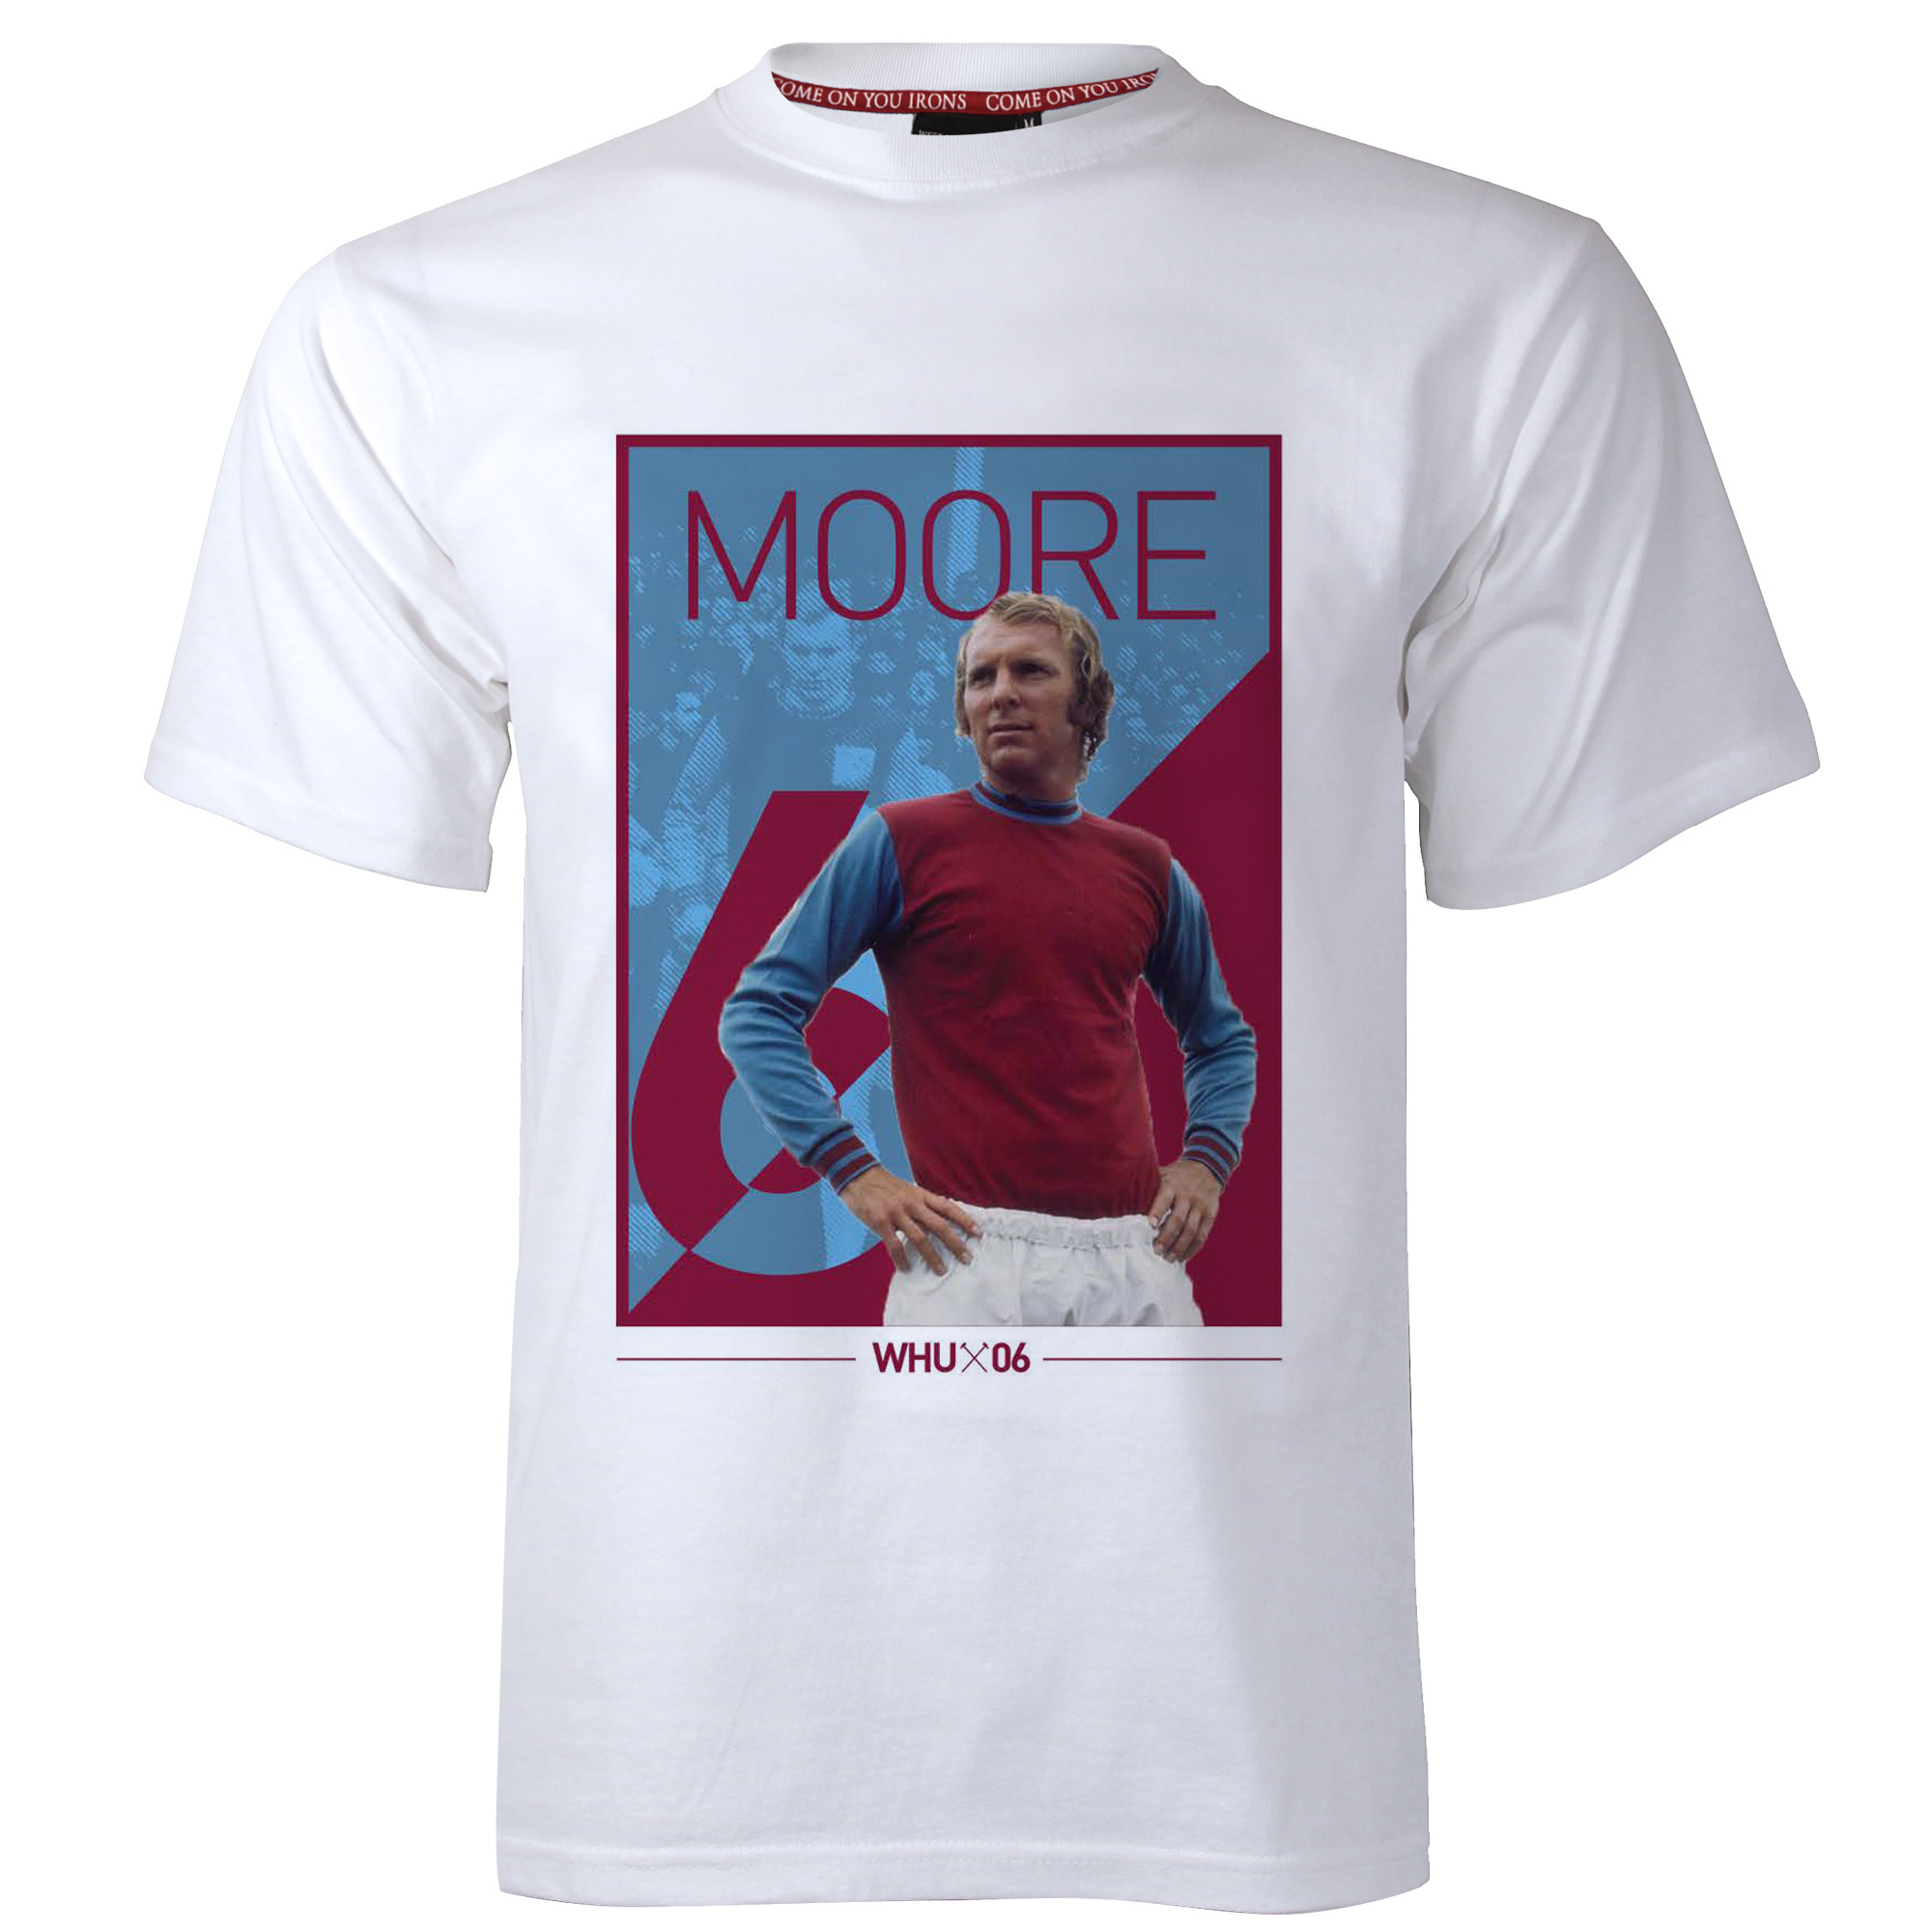 ADULT WHITE BLOCK MOORE T-SHIRT